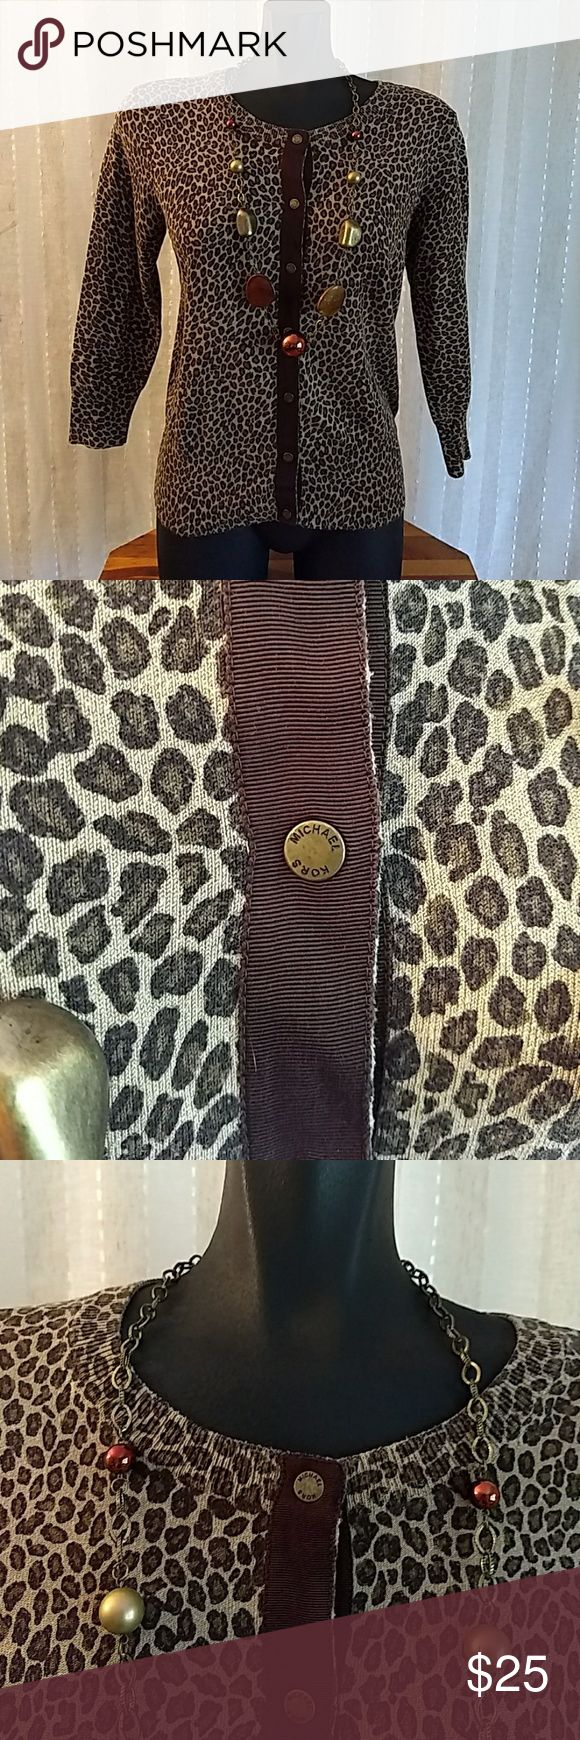 Michael Kors cheetah cardigan Size small, moderately loved around the neck picture above, cheetah print in Design, button front closure, 3/4 quarter inch sleeves Michael Kors Sweaters Cardigans